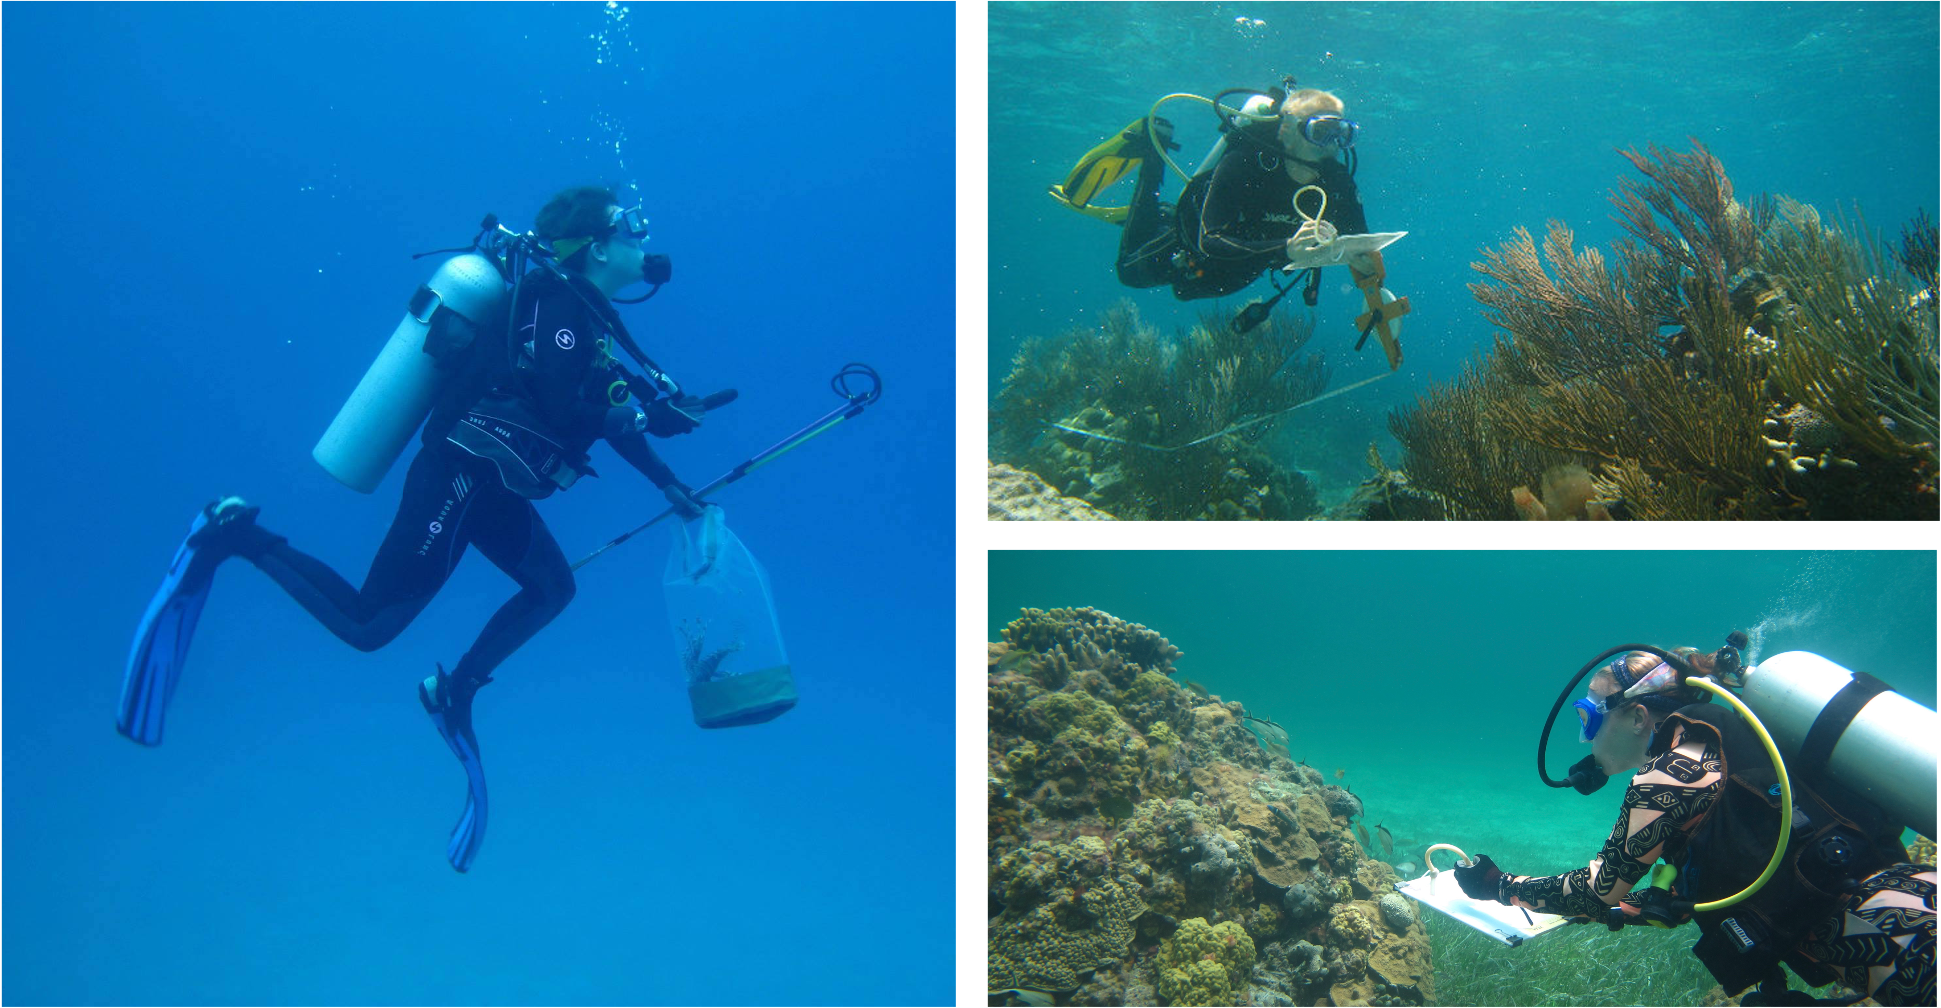 Study co-authors conducting fieldwork in The Bahamas. Counterclockwise from left is Allison Stringer with a live lionfish (Pterois volitans), Robert Lamb conducting a transect survey, and Lillian Tuttle observing cleaning stations at a coral patch reef. Photo credits: Lillian Tuttle, Tim Pusack, and Severin Vaillancourt, respectively.